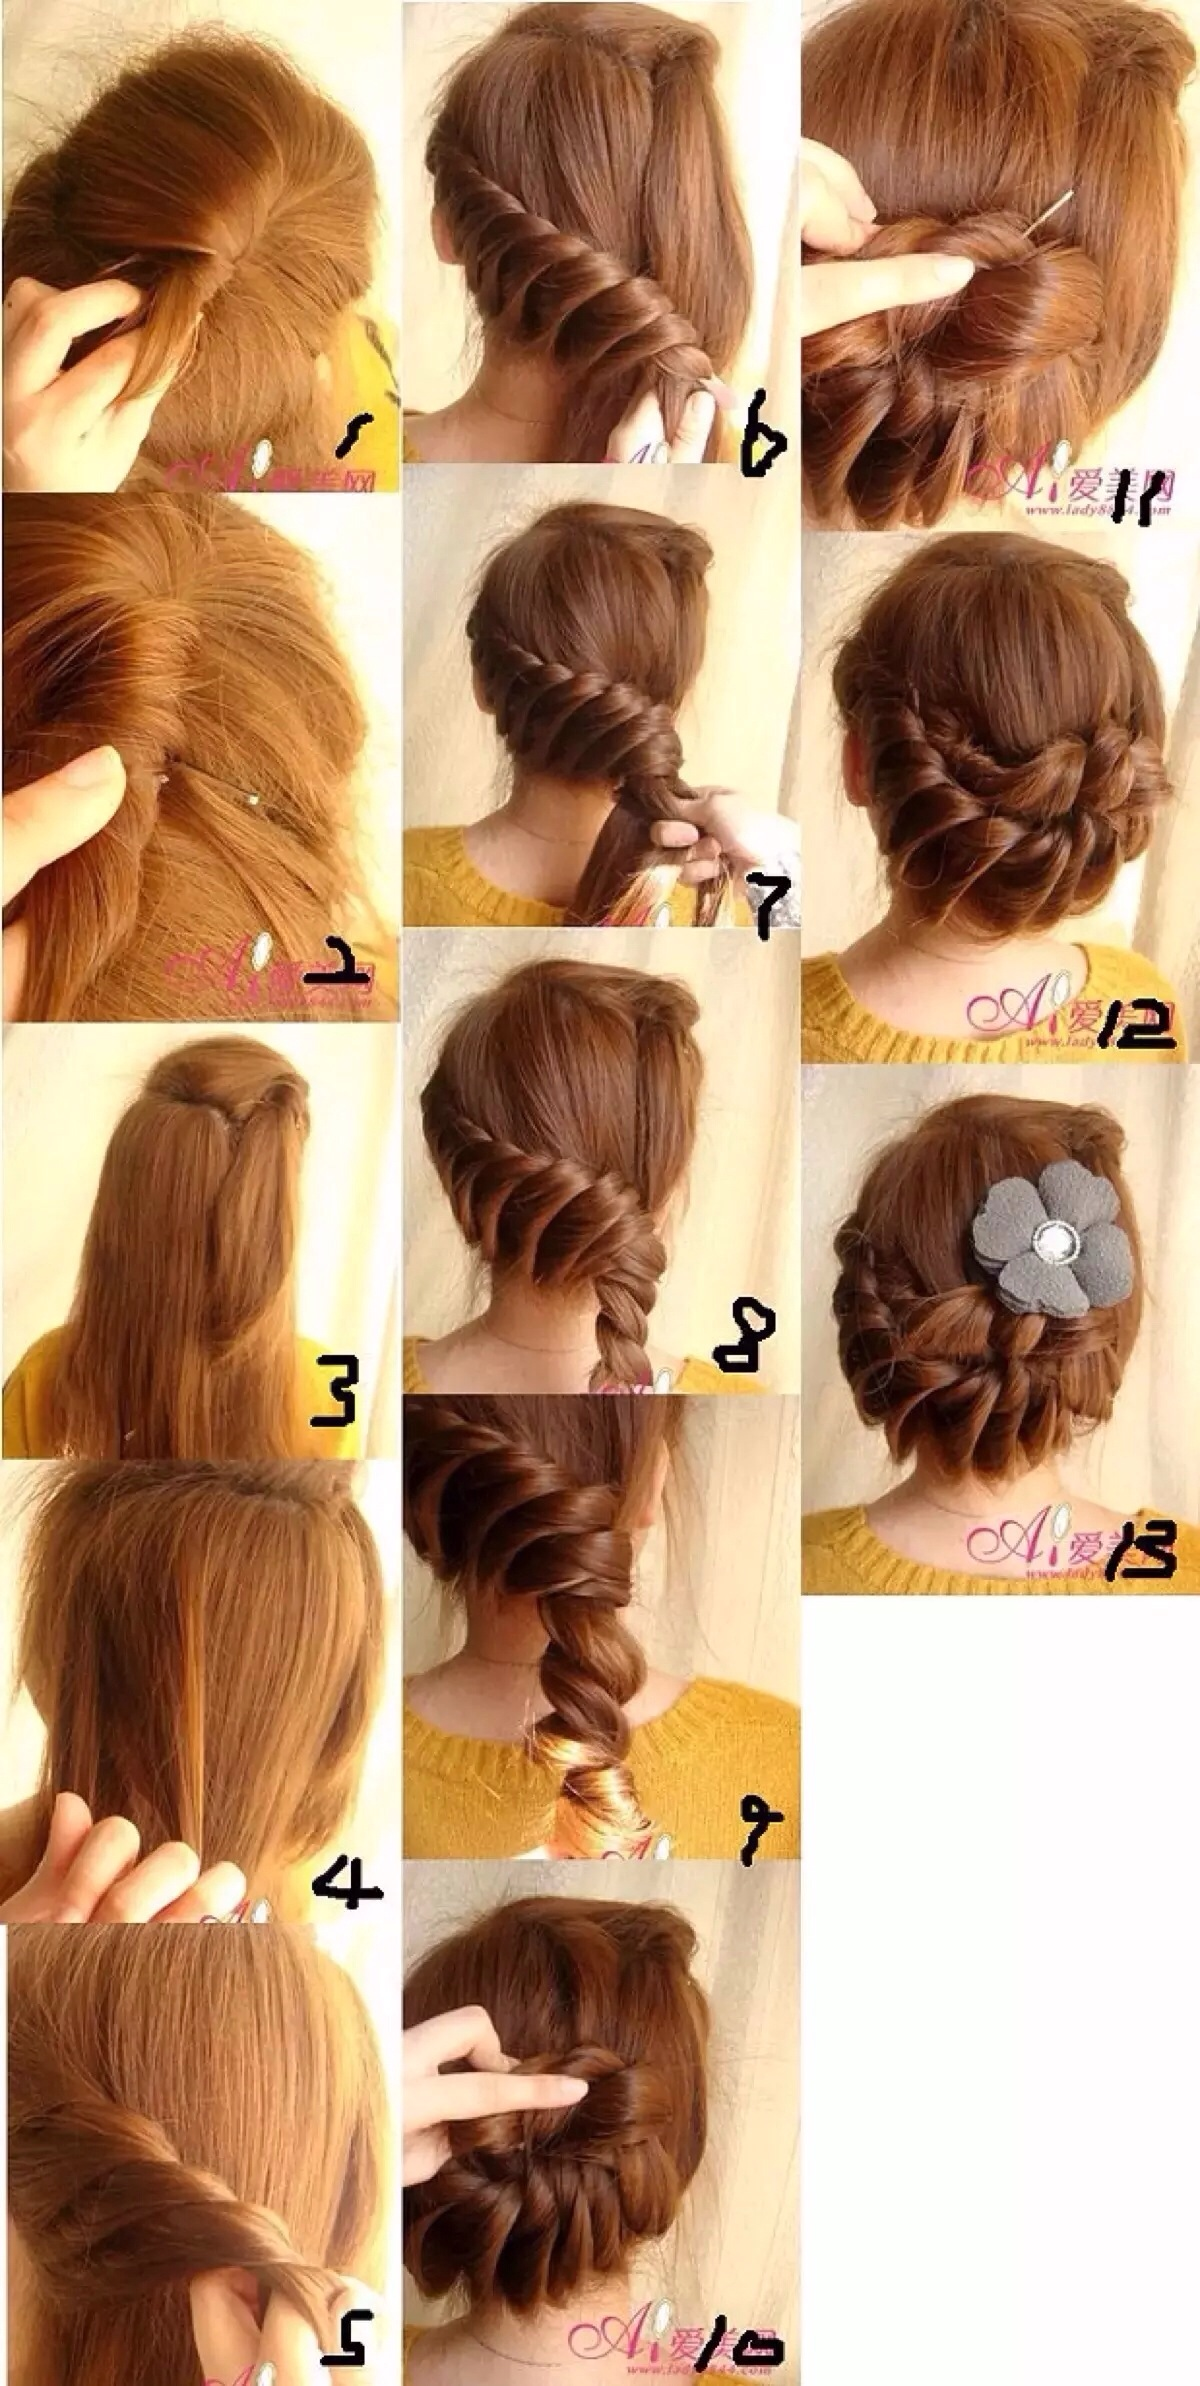 Wonderful Dish Hair Tutorial for Mothers Day